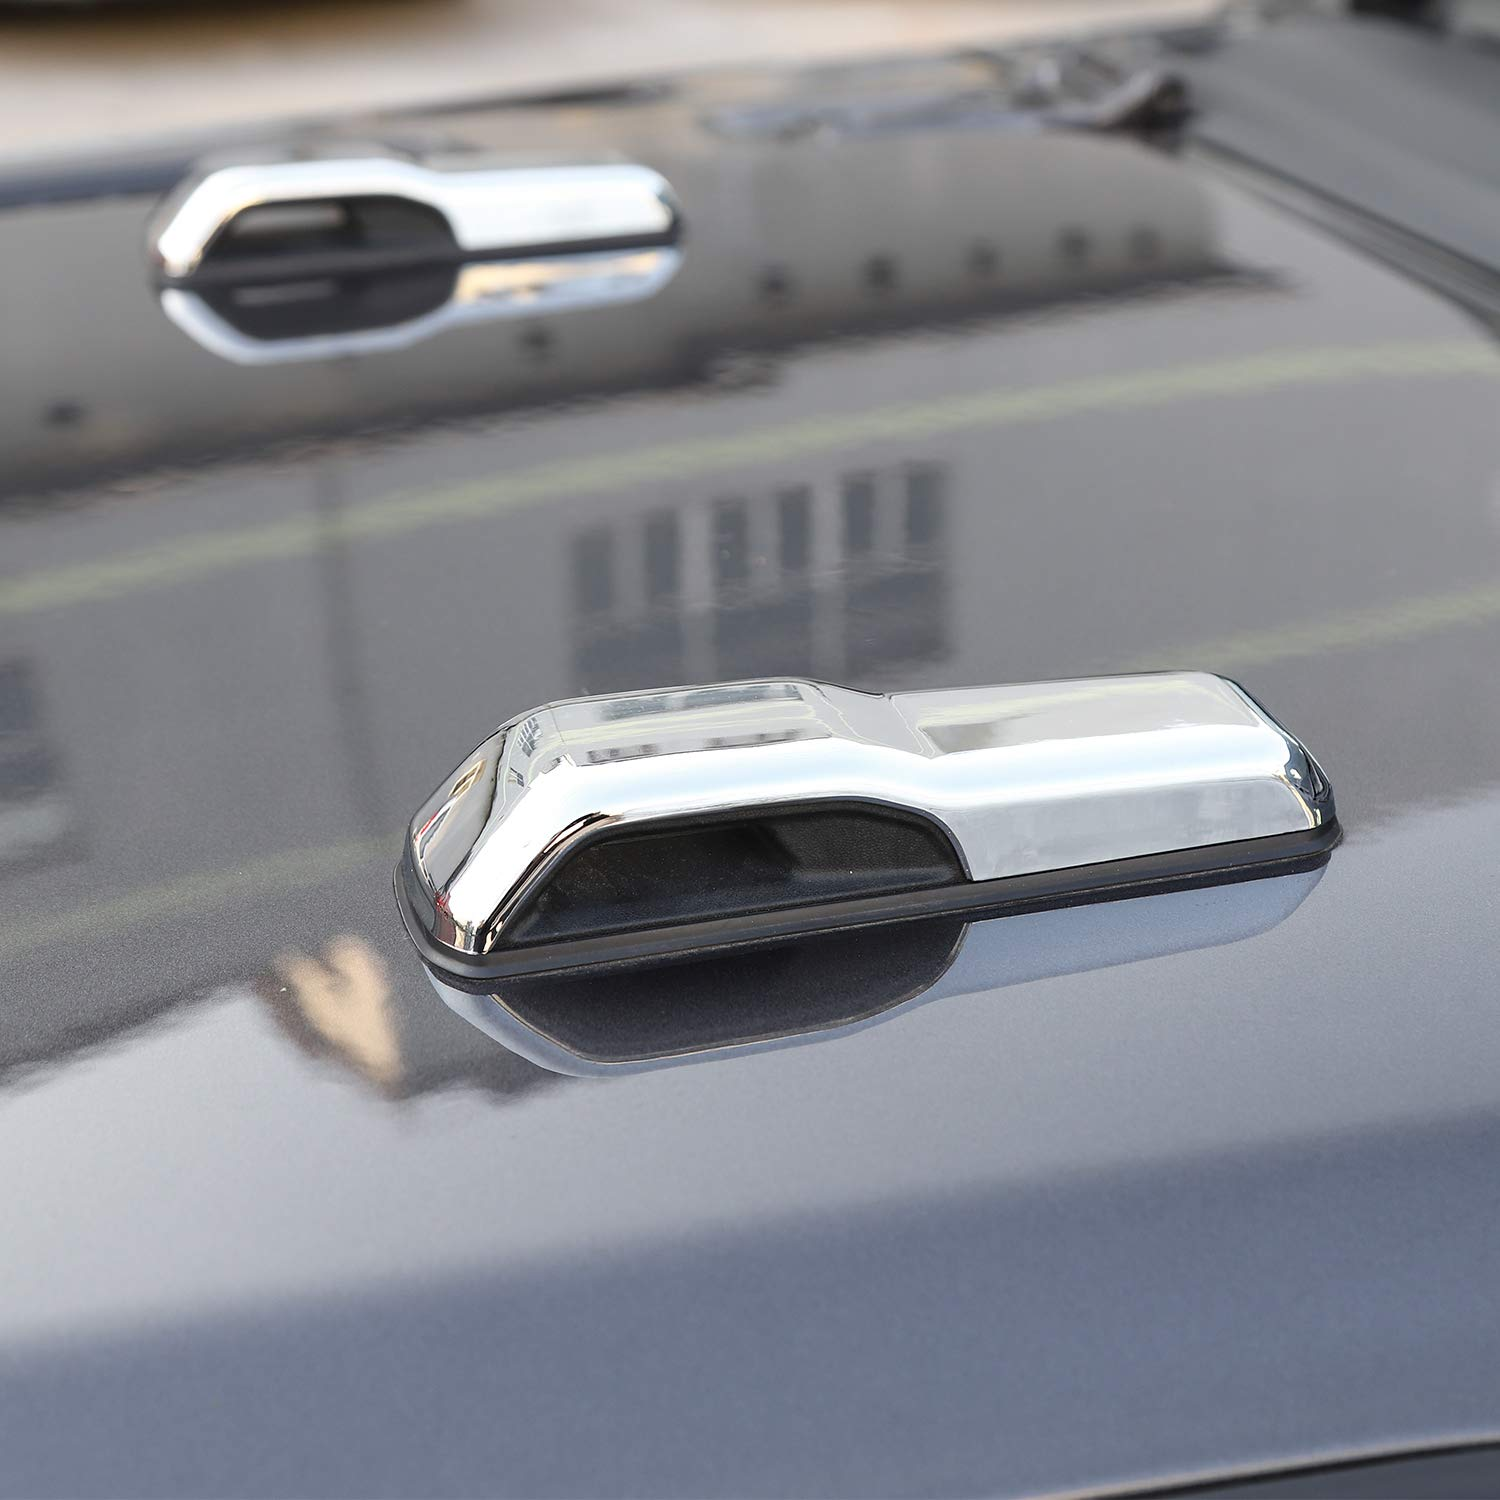 Chrome fits for 2020 Jeep Gladtiator JT CheroCar JL JT Engine Hood Hinge Cover Decoration Cover Stickers Exterior Accessories for 2018-2020 Jeep Wrangler JL JLU